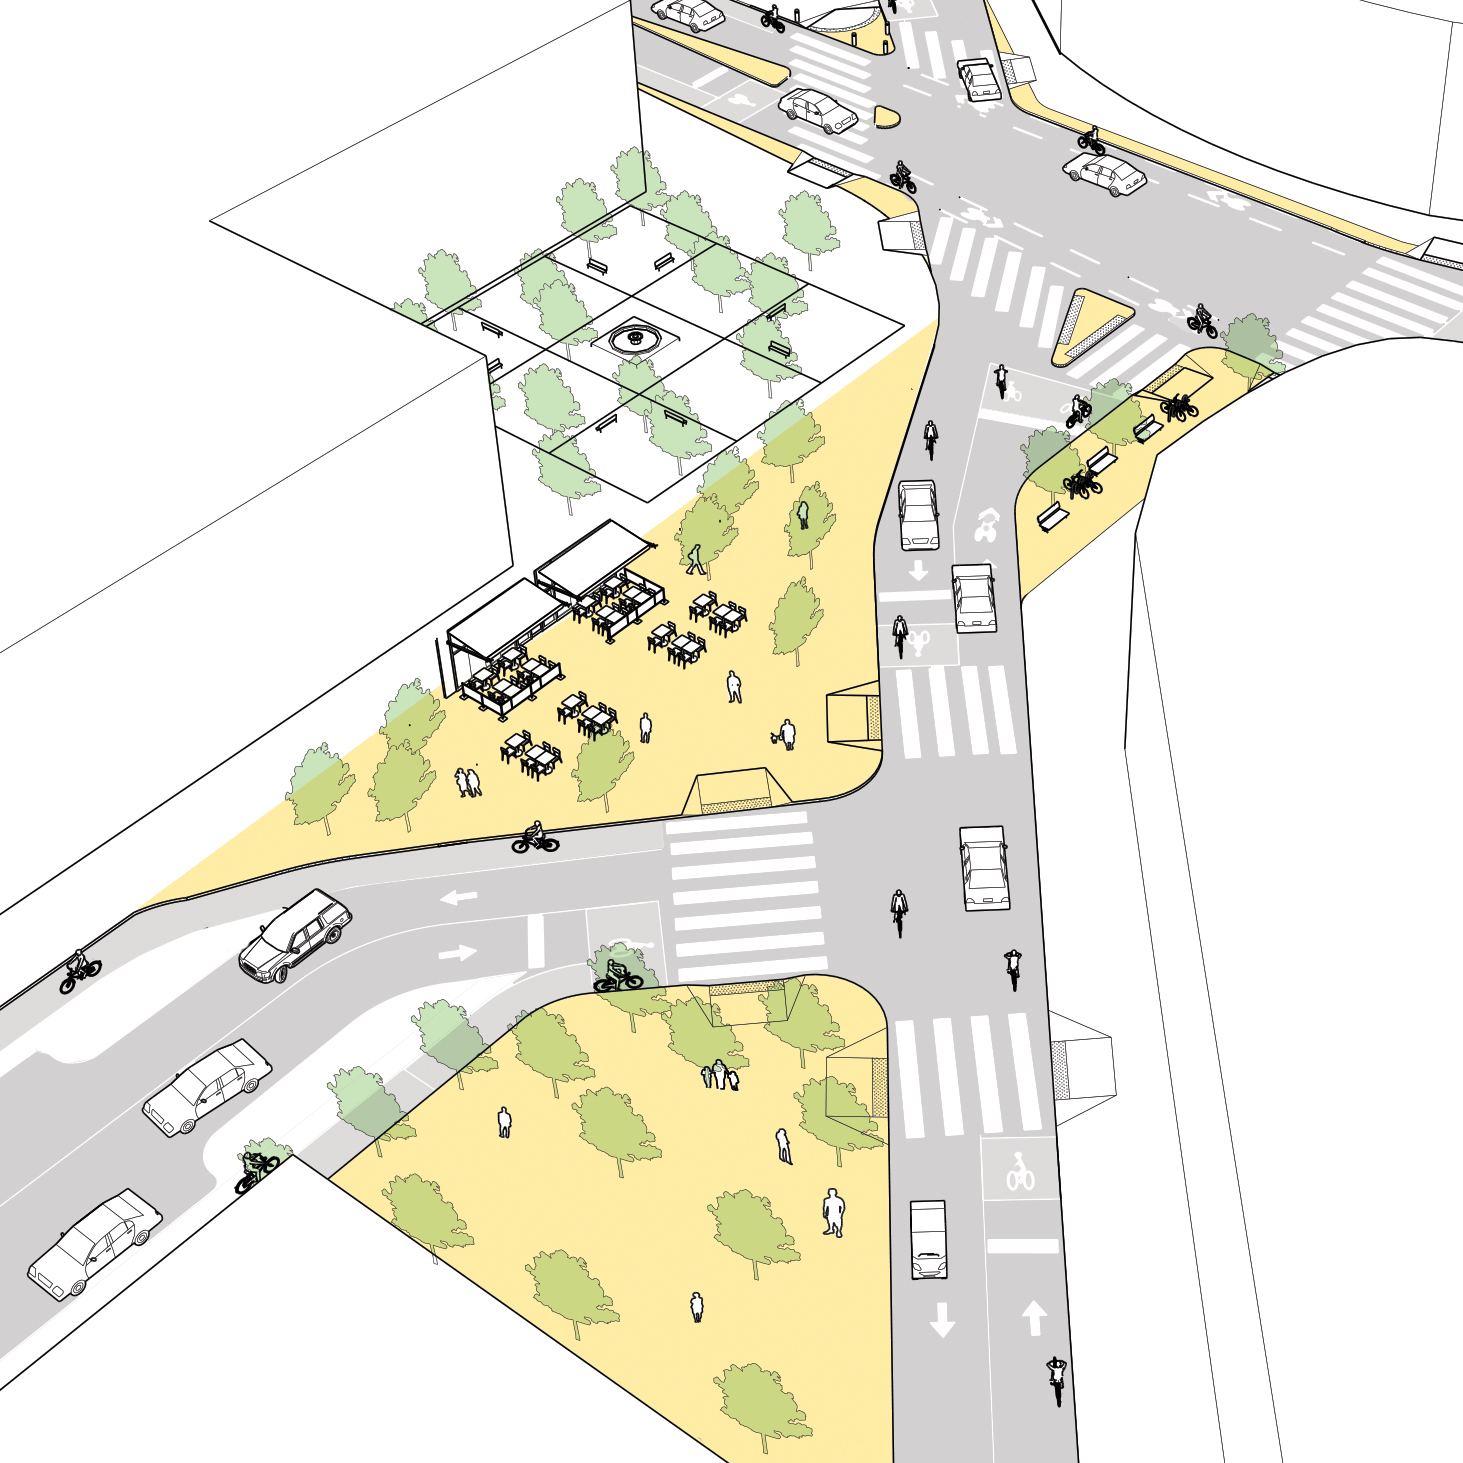 Complex Intersection Analysis National Association Of City Transportation Officials